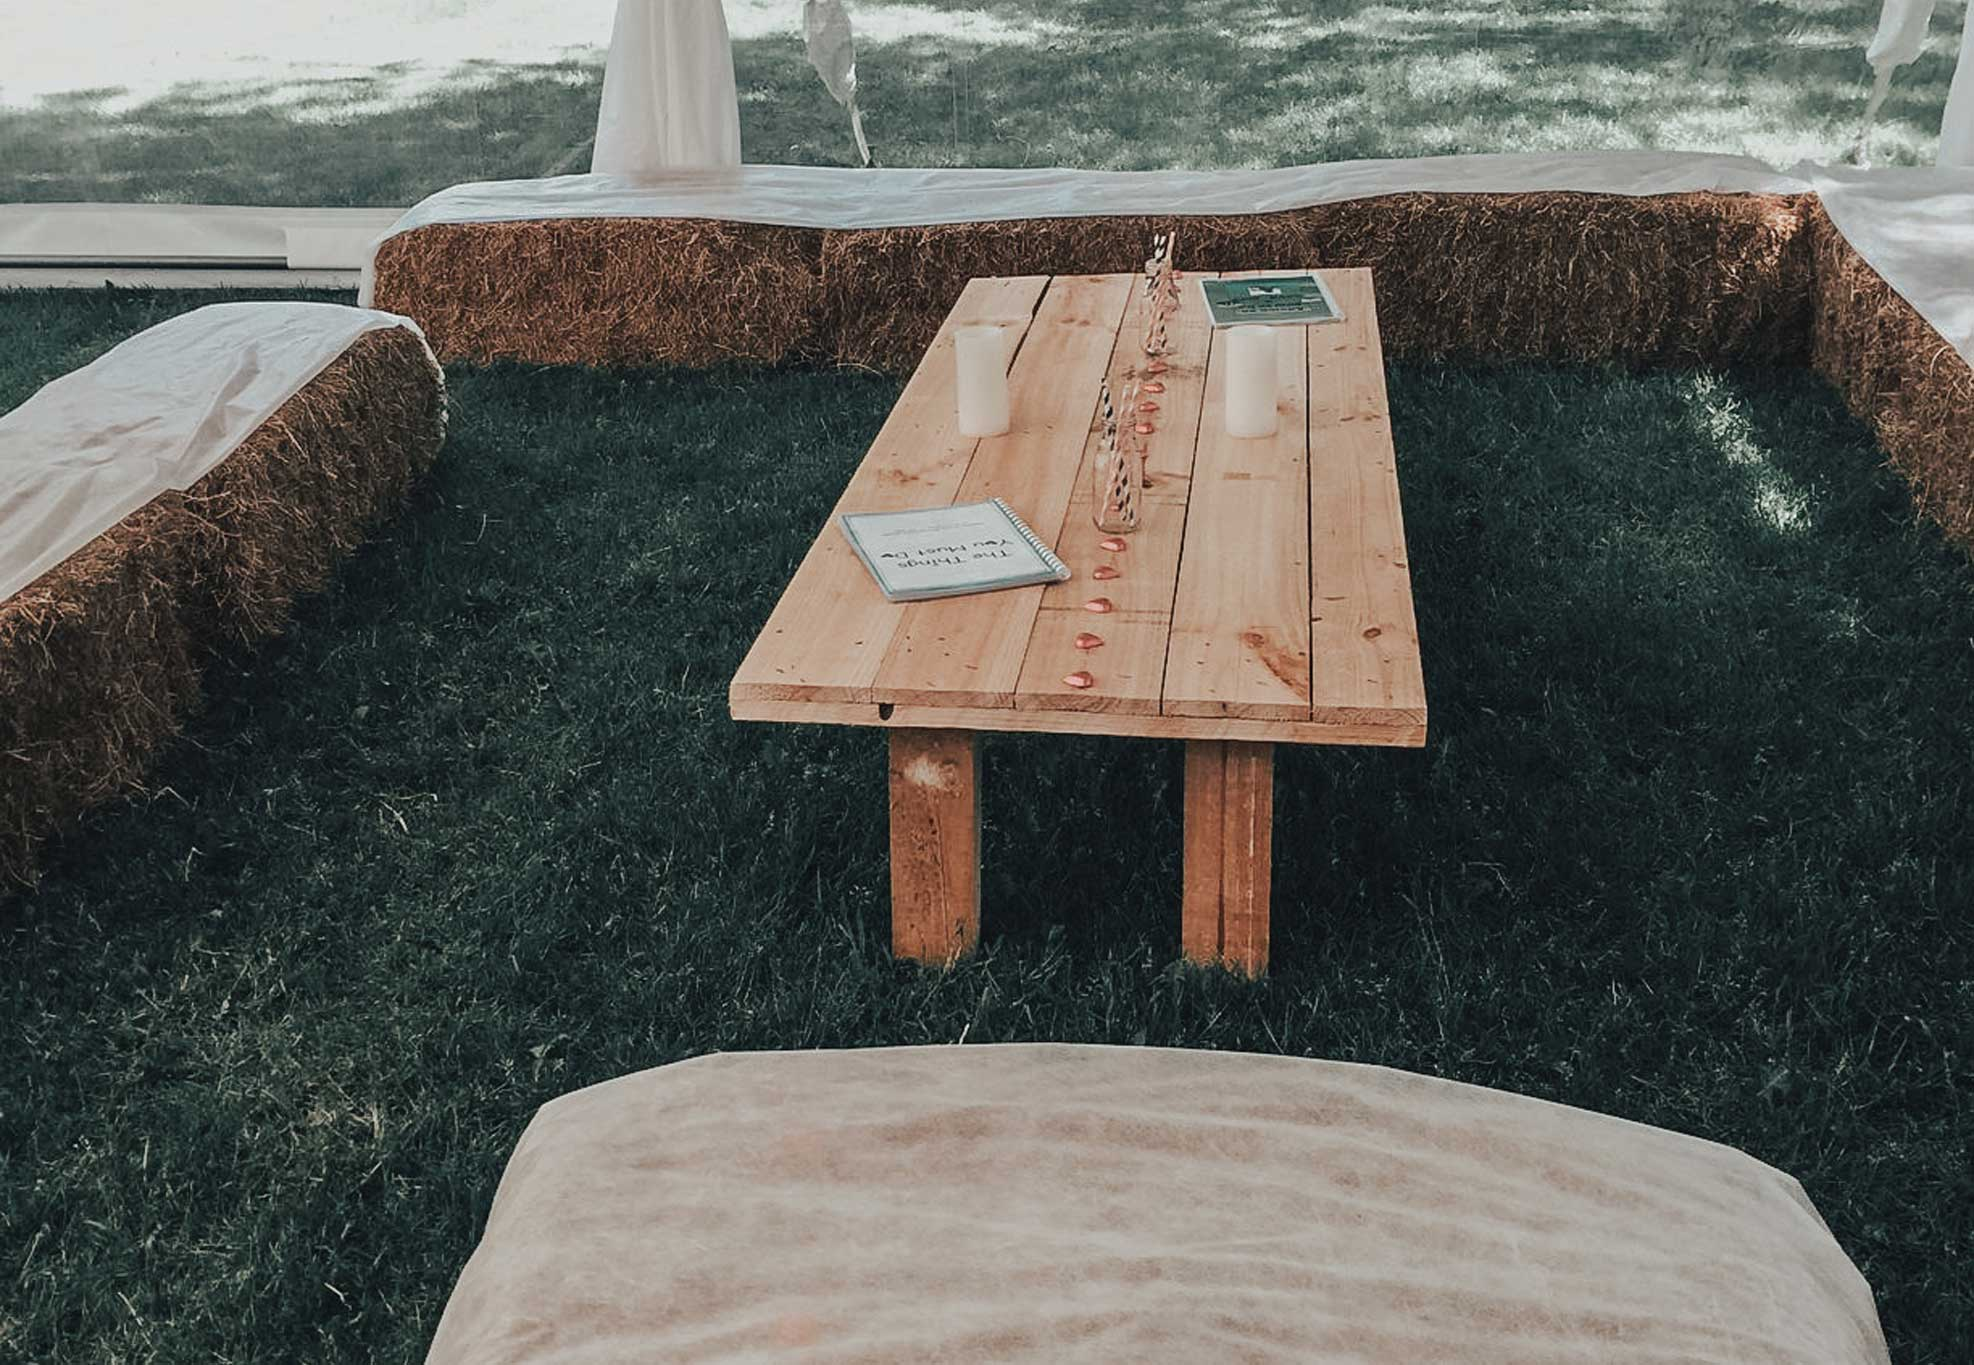 silk-estate-marquee-weddings-and-events-styling-and-hire-furniture-lounge-pallet-1